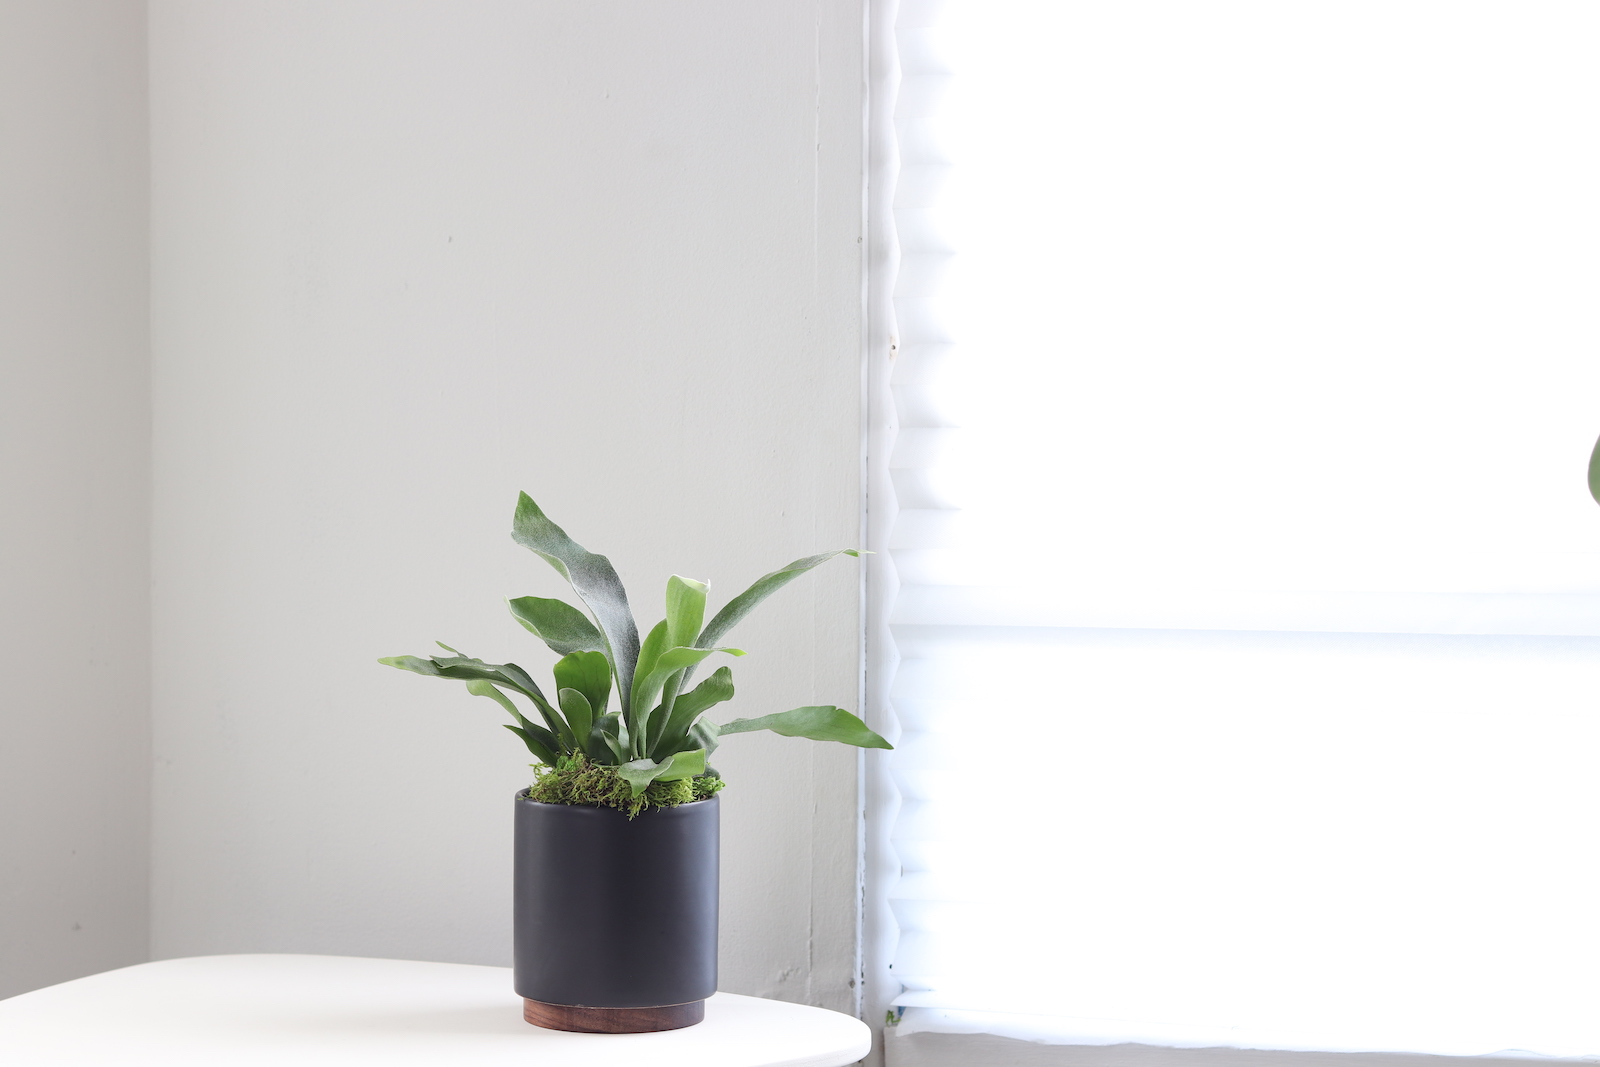 Ferns are great plants for bathrooms as they do well in humid areas